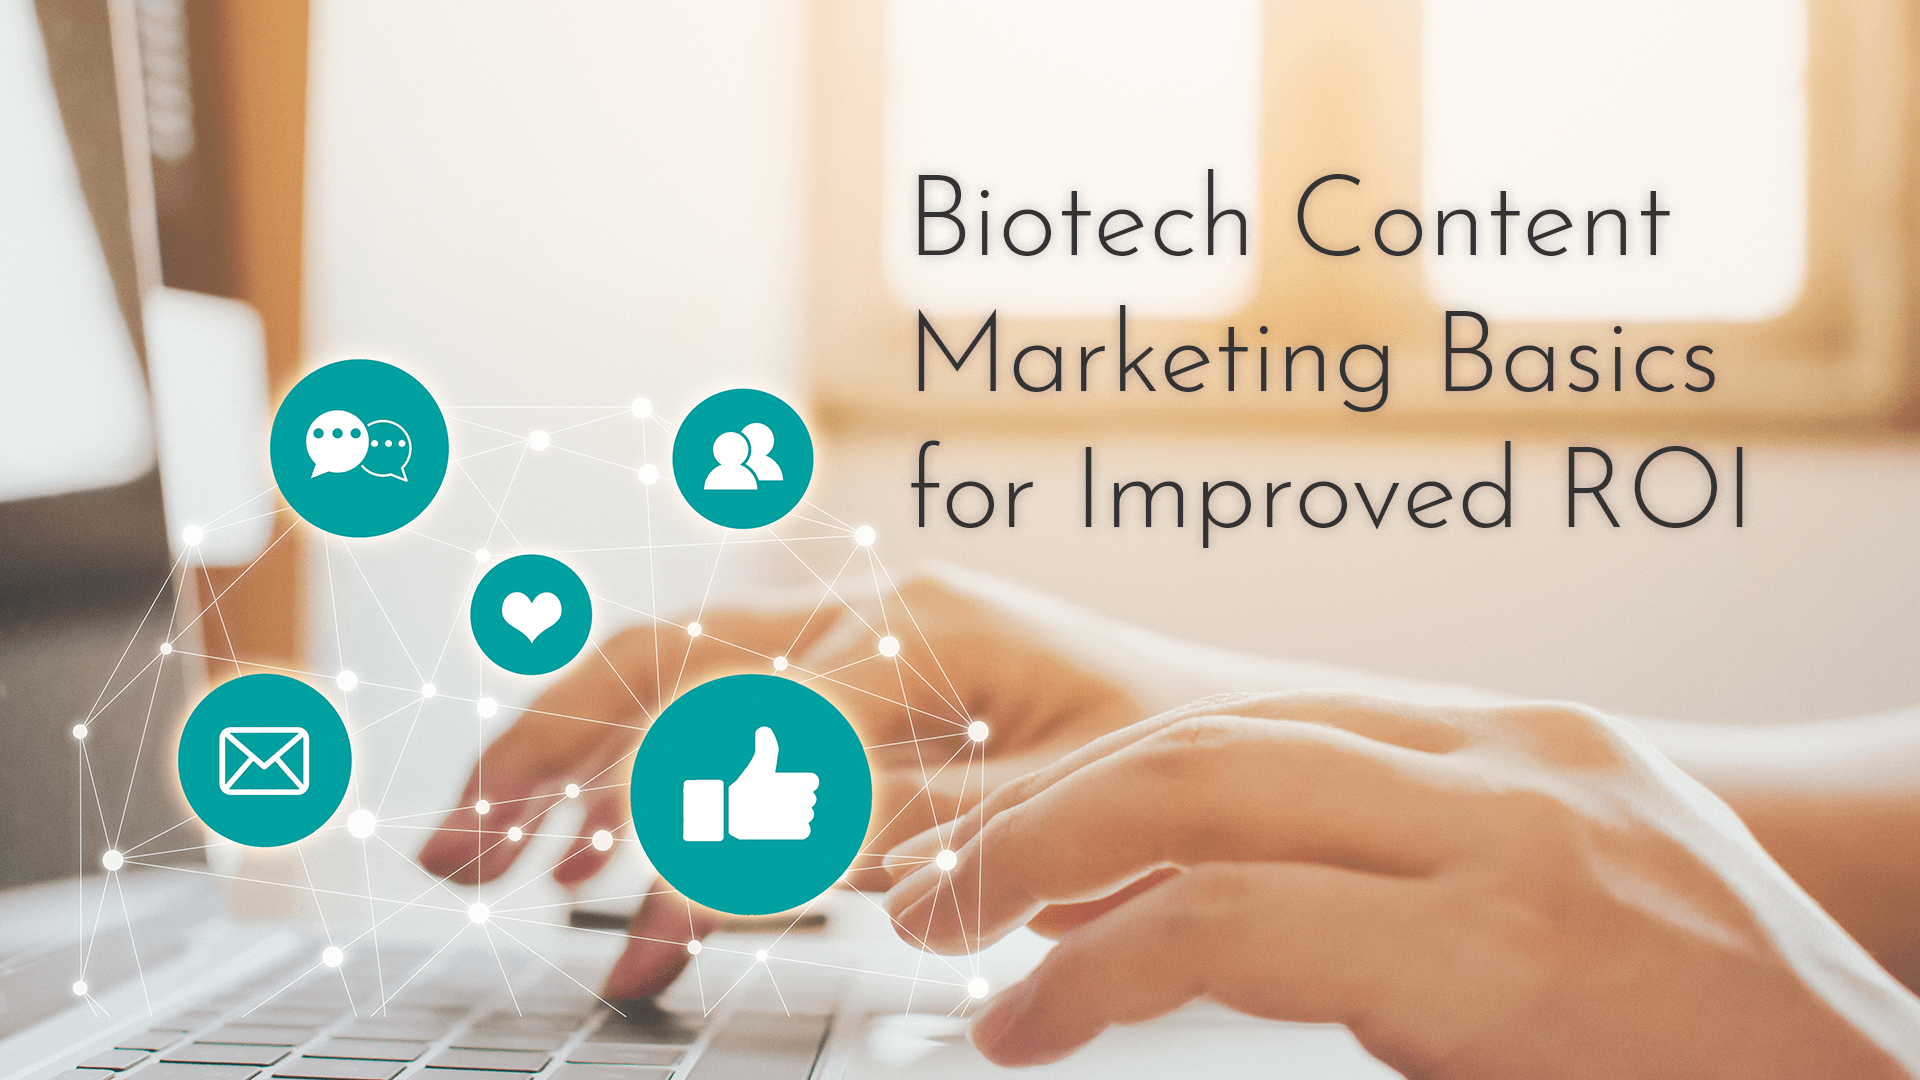 Read: Biotech Content Marketing Basics for Improved ROI